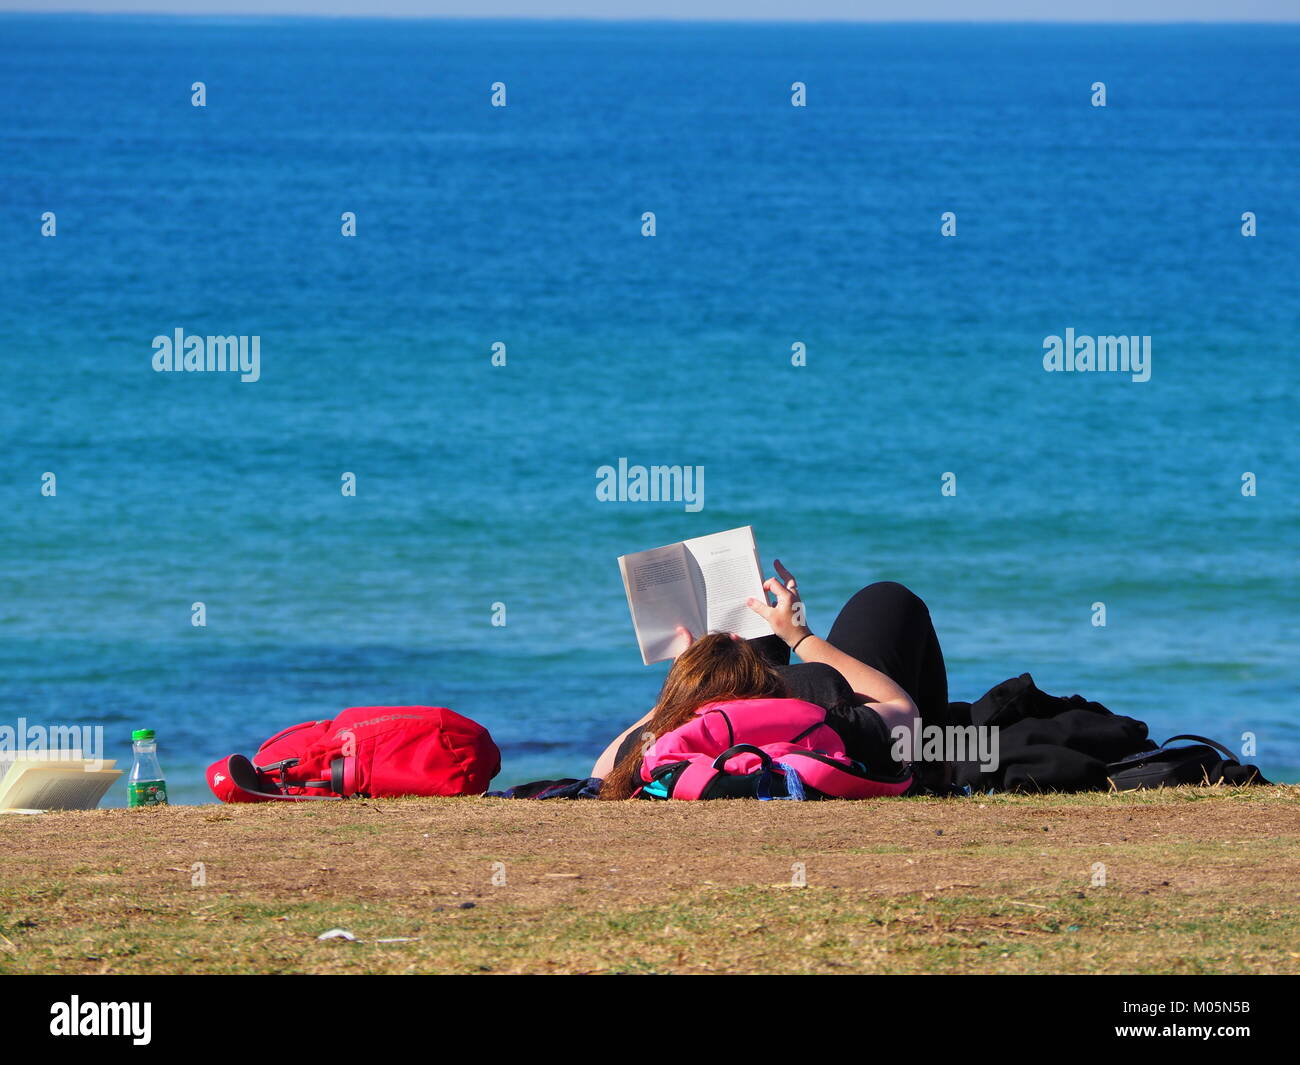 girl lying in the sun at the promenade near the beach in front of the sea on a perfect day with clear blue sky Stock Photo